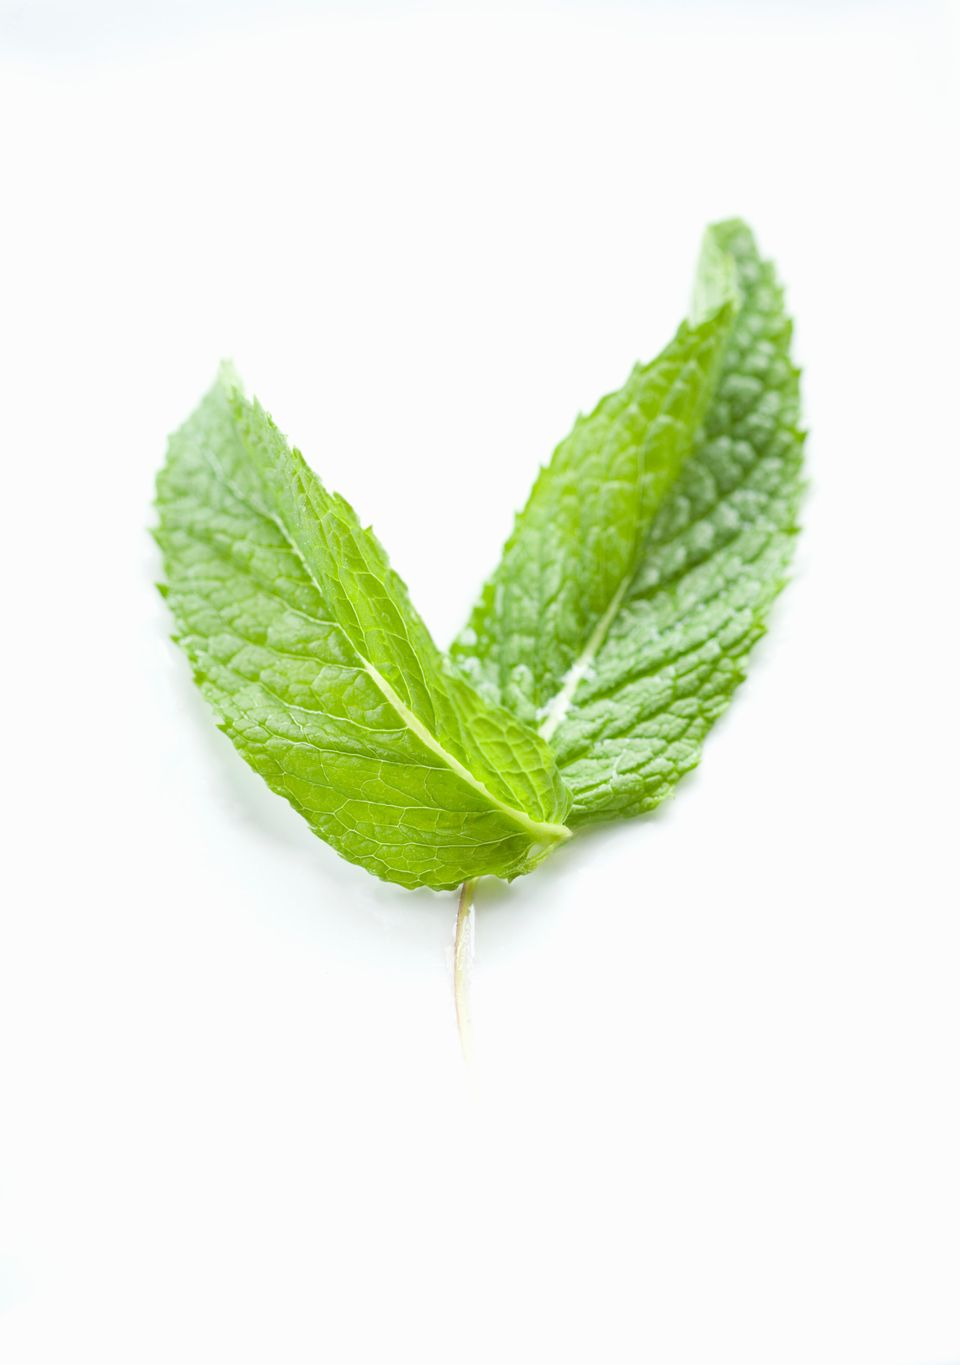 Sip some mint tea and it will relieve gas and decrease cramping, says Jacqueline Wolf, M.D., physician at Beth Israel Deacone